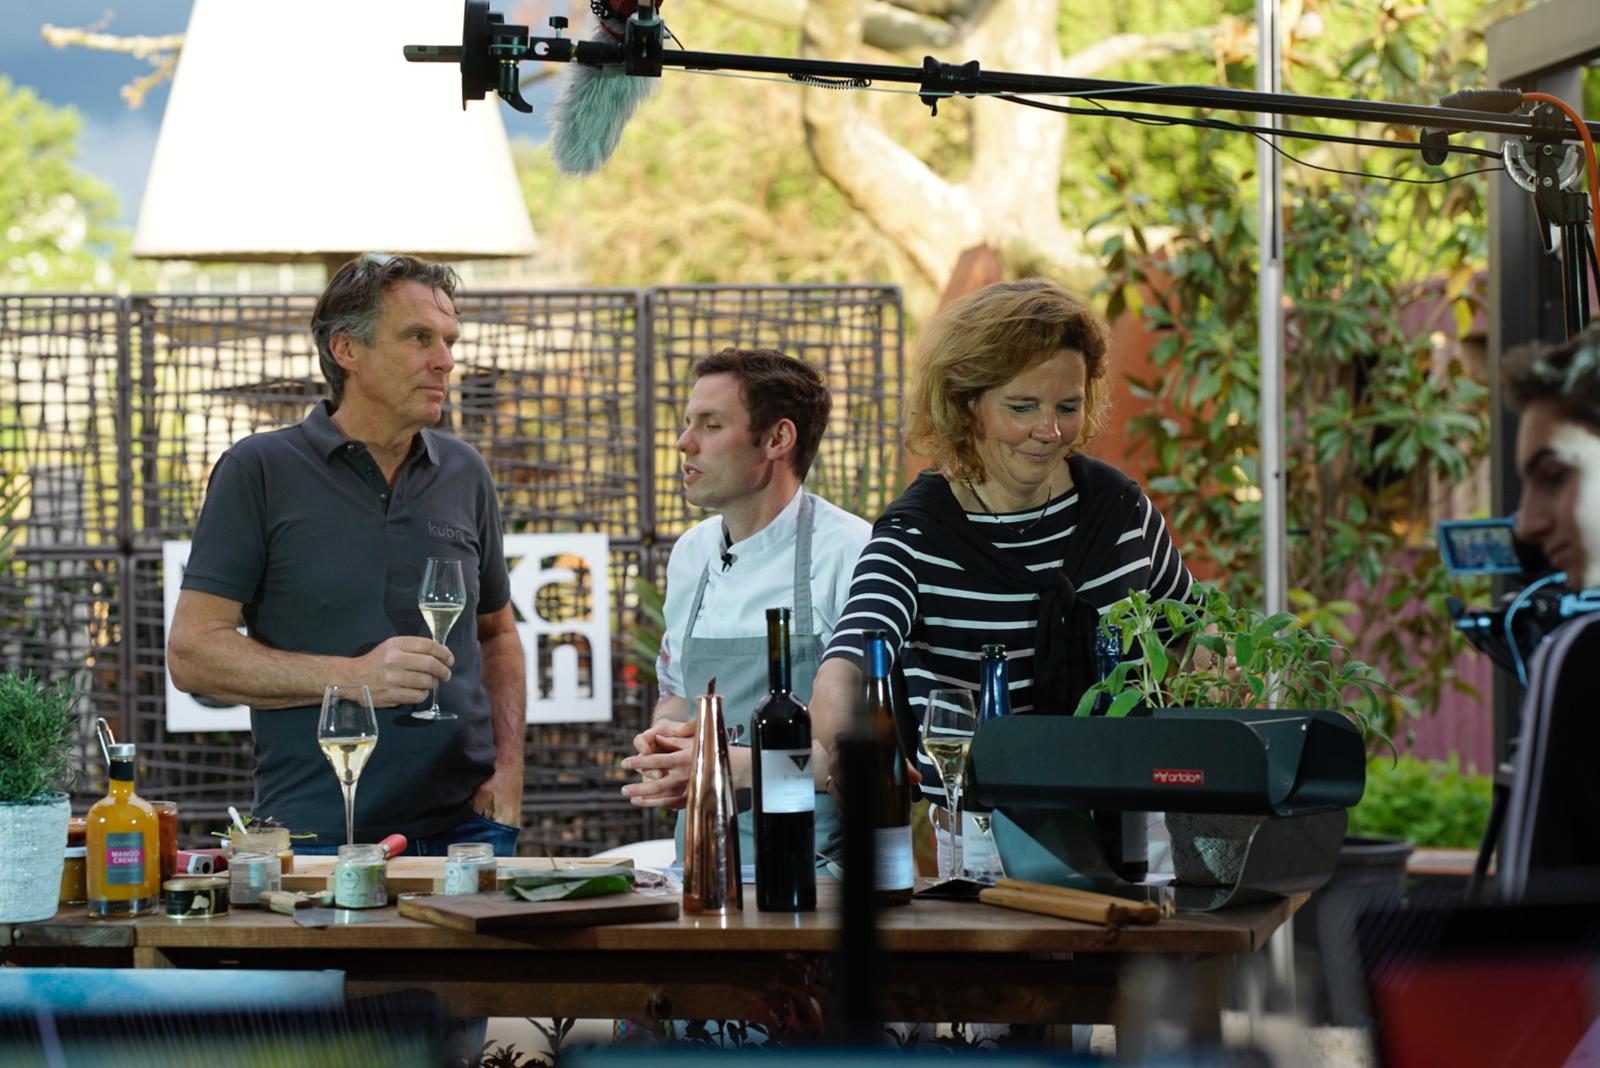 776d546f 7a9c 426e 9298 ace67bcd5be4 - EINDRÜCKE VOM GRILL EVENT MIT WEINTASTING